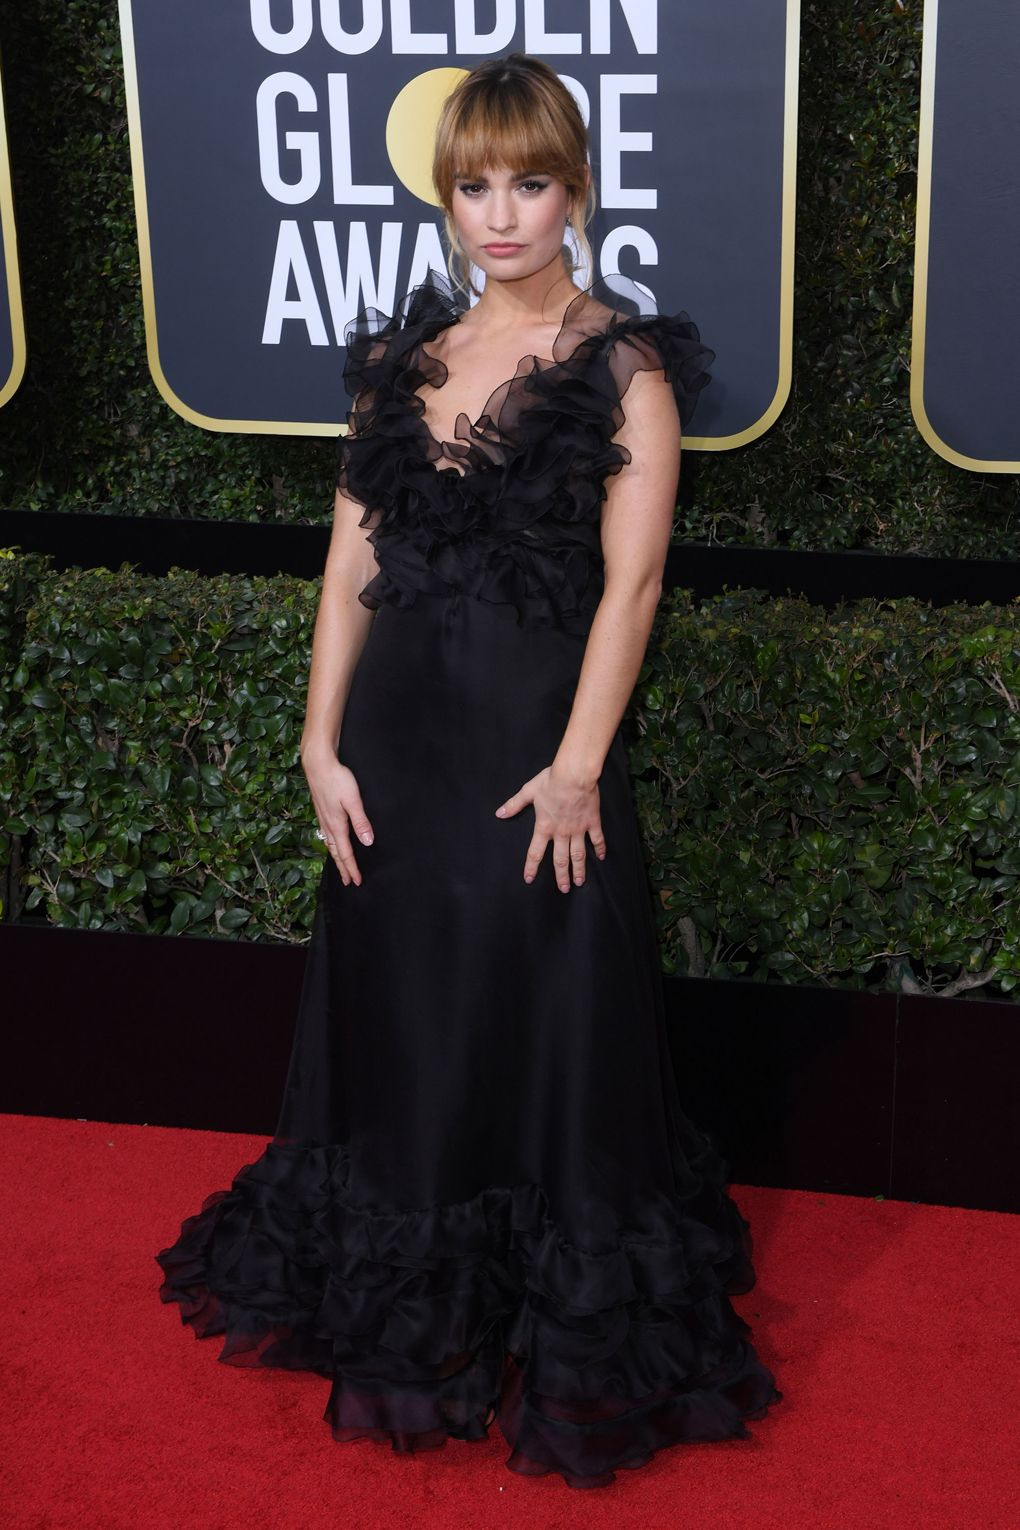 Golden Globes Red Carpet 2018 - Lily James in Valentino with Harry Winston jewelry - Photo credit Rex/Shutterstock - women empowerment - black dresses golden globes 2018 - times up